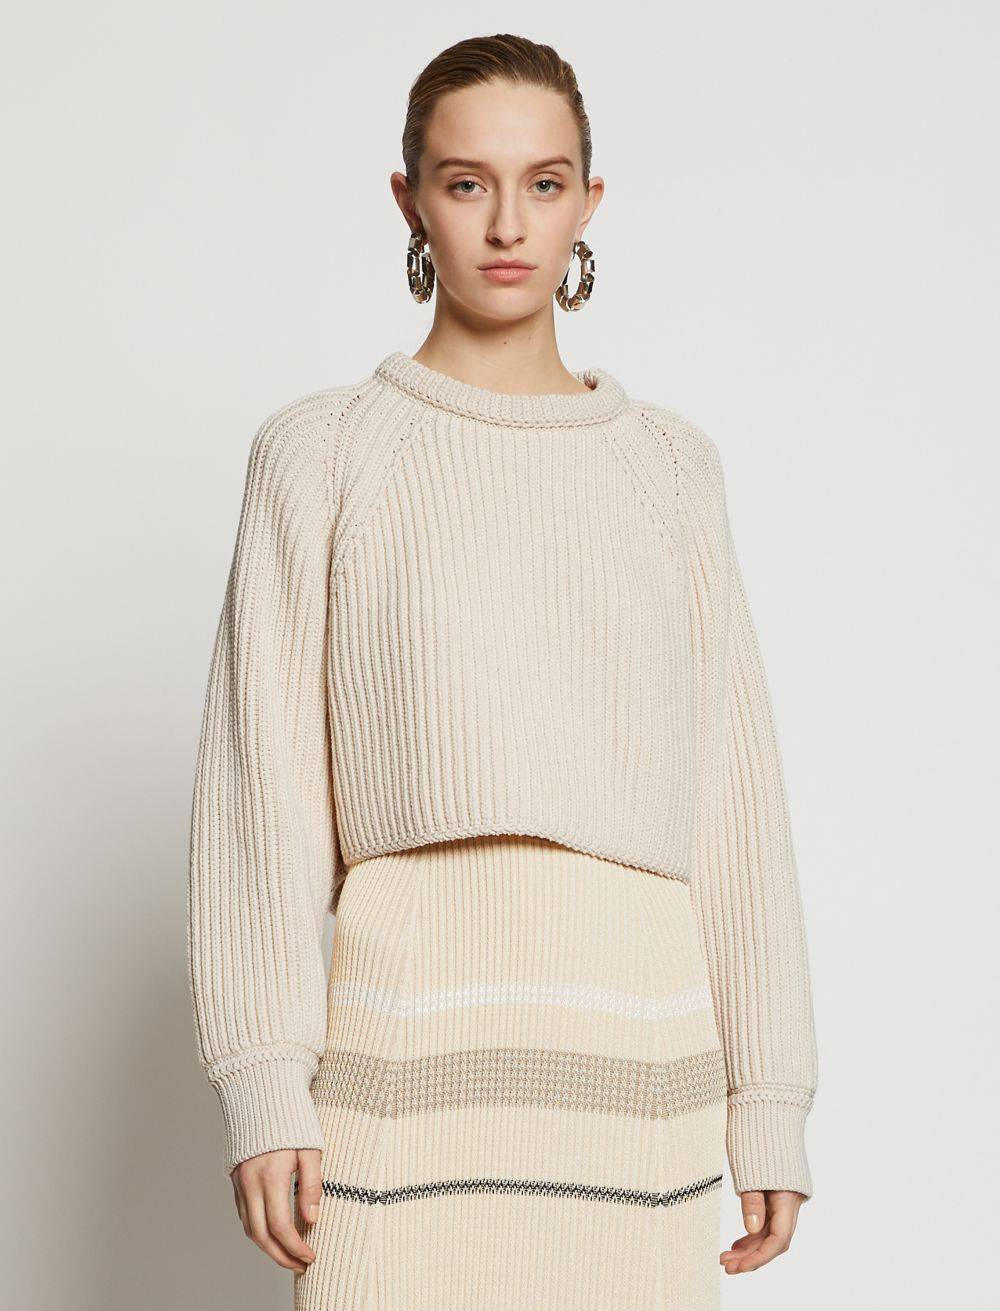 Proenza Schouler Chunky Cotton Rib Sweater ecru/white XS